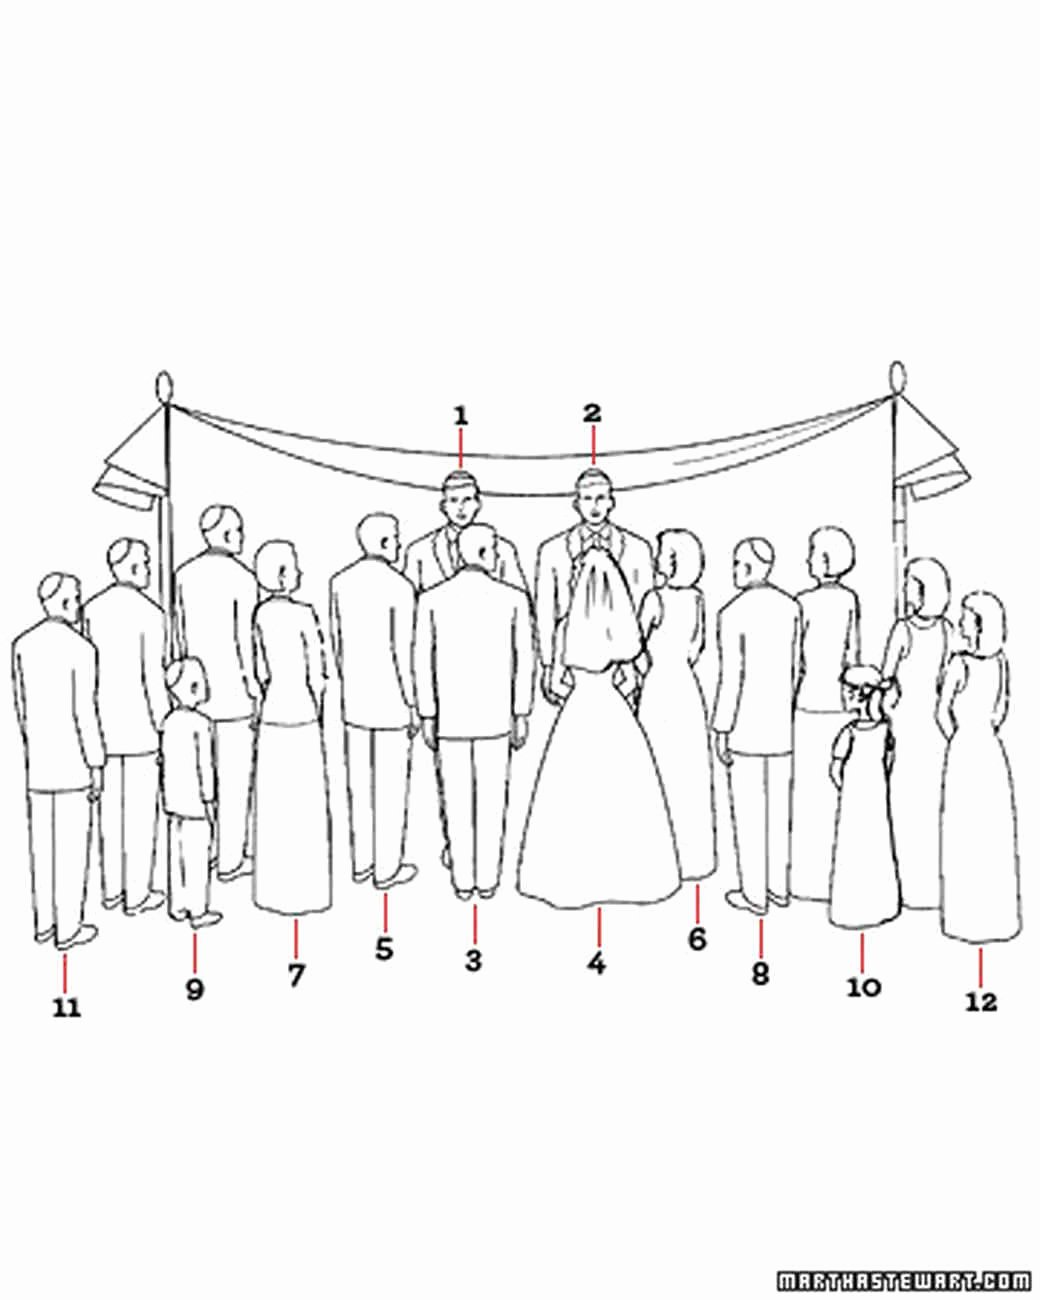 Diagram Your Big Day Jewish Wedding Ceremony Basics